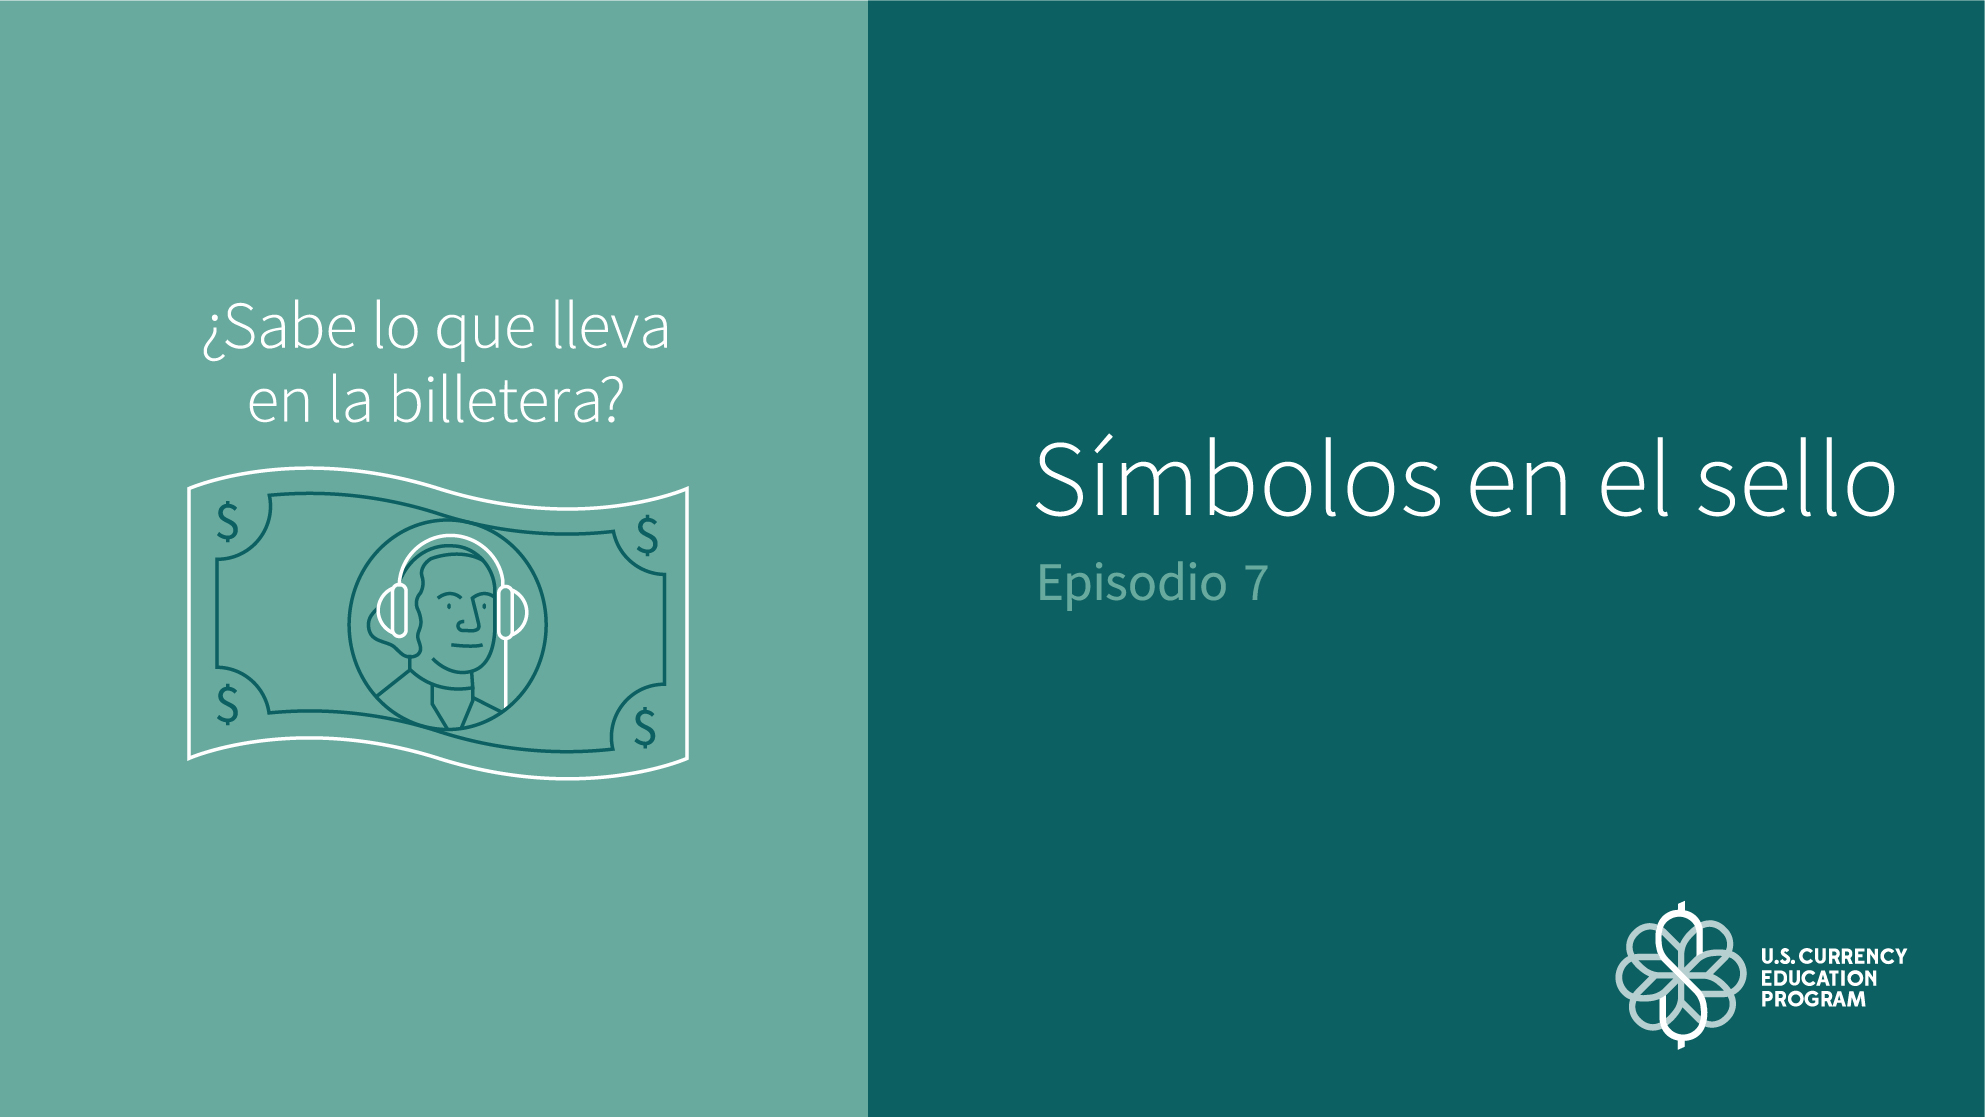 Símbolos en el sello